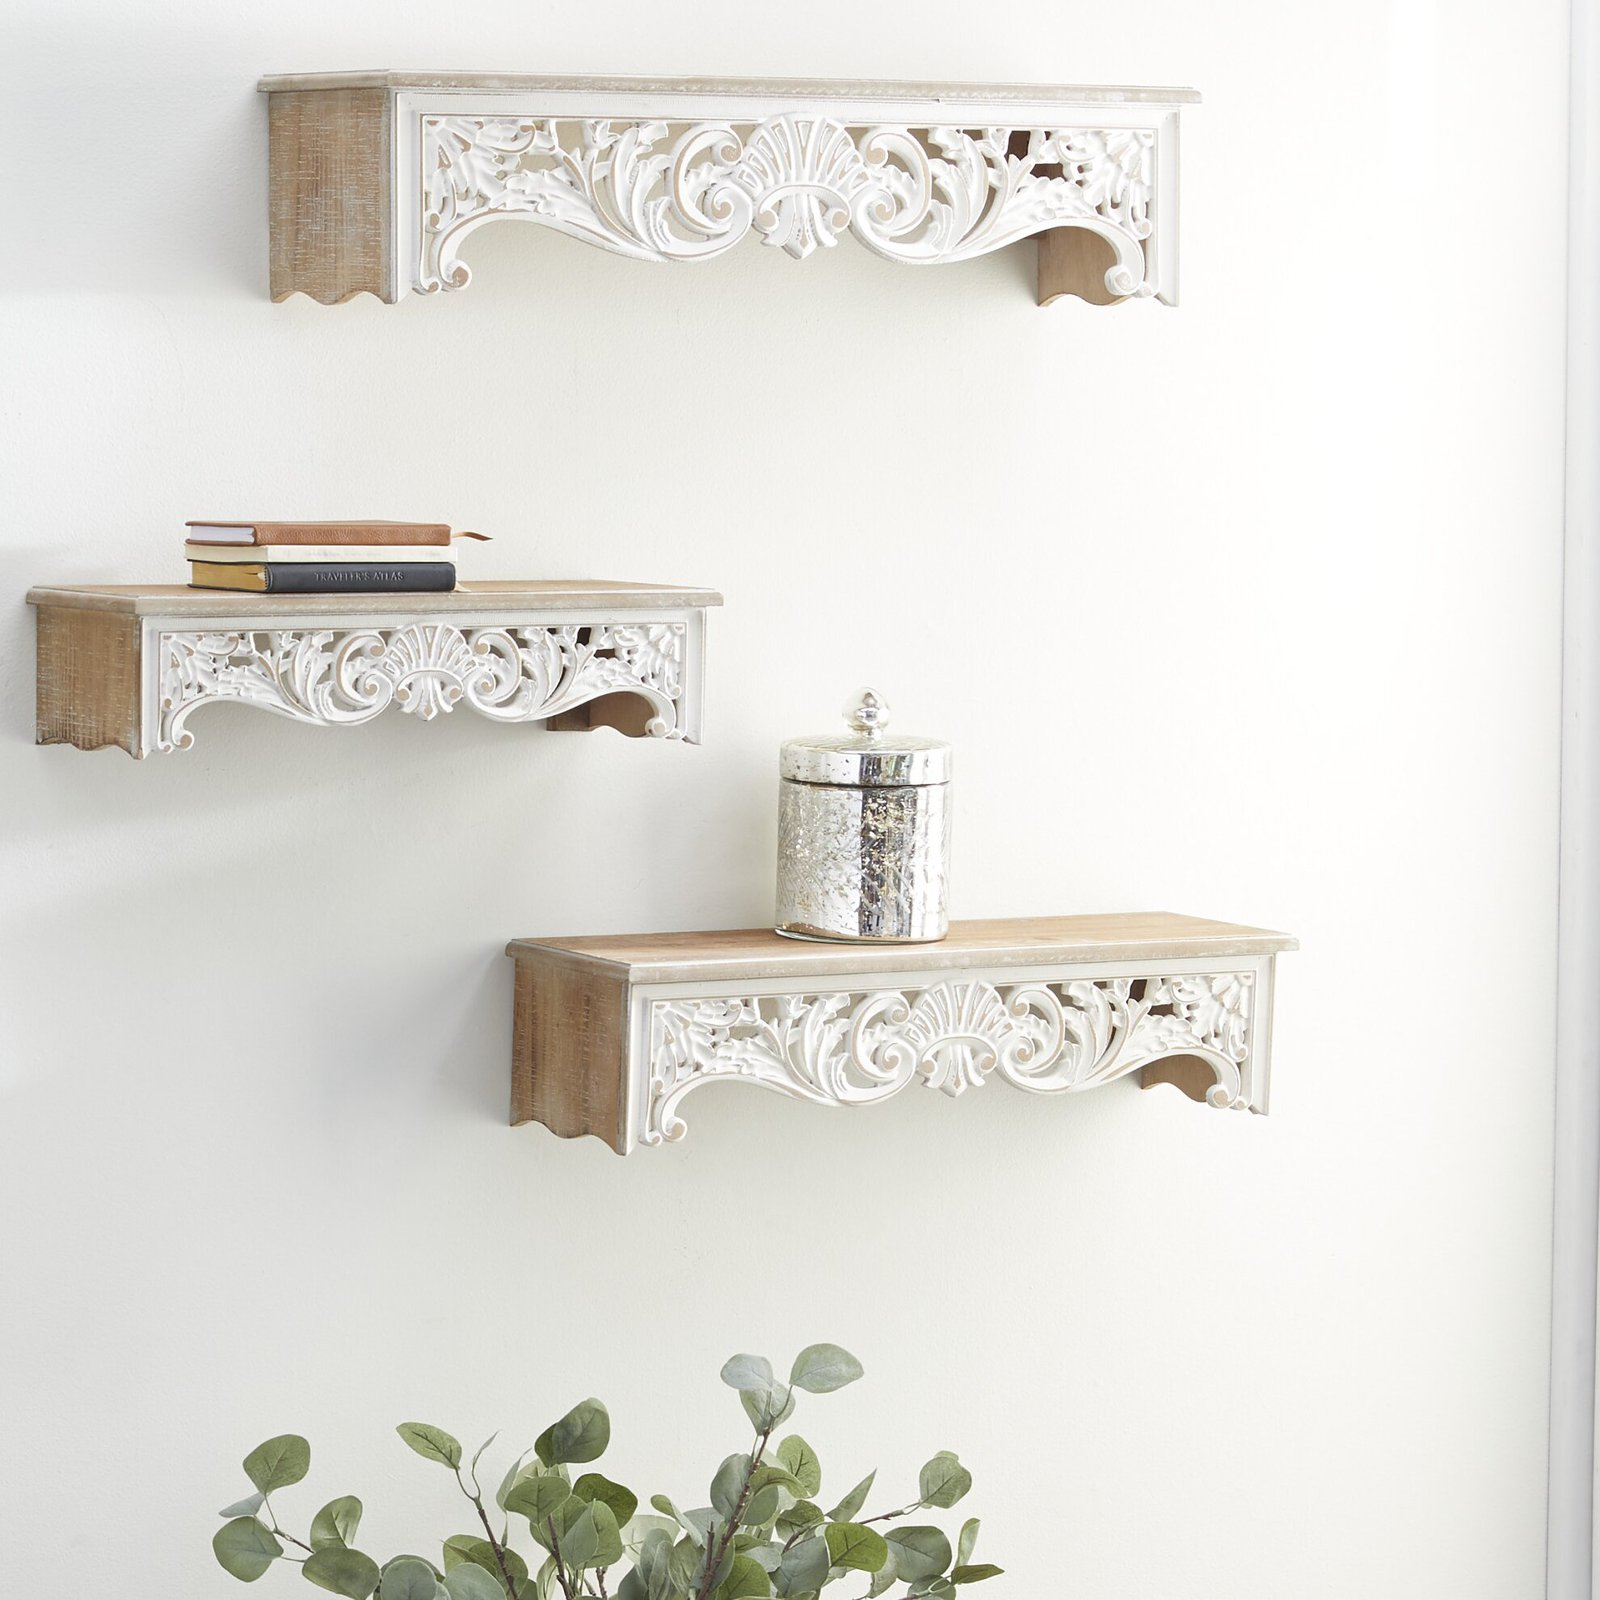 Intricate Carved Wooden Shelves